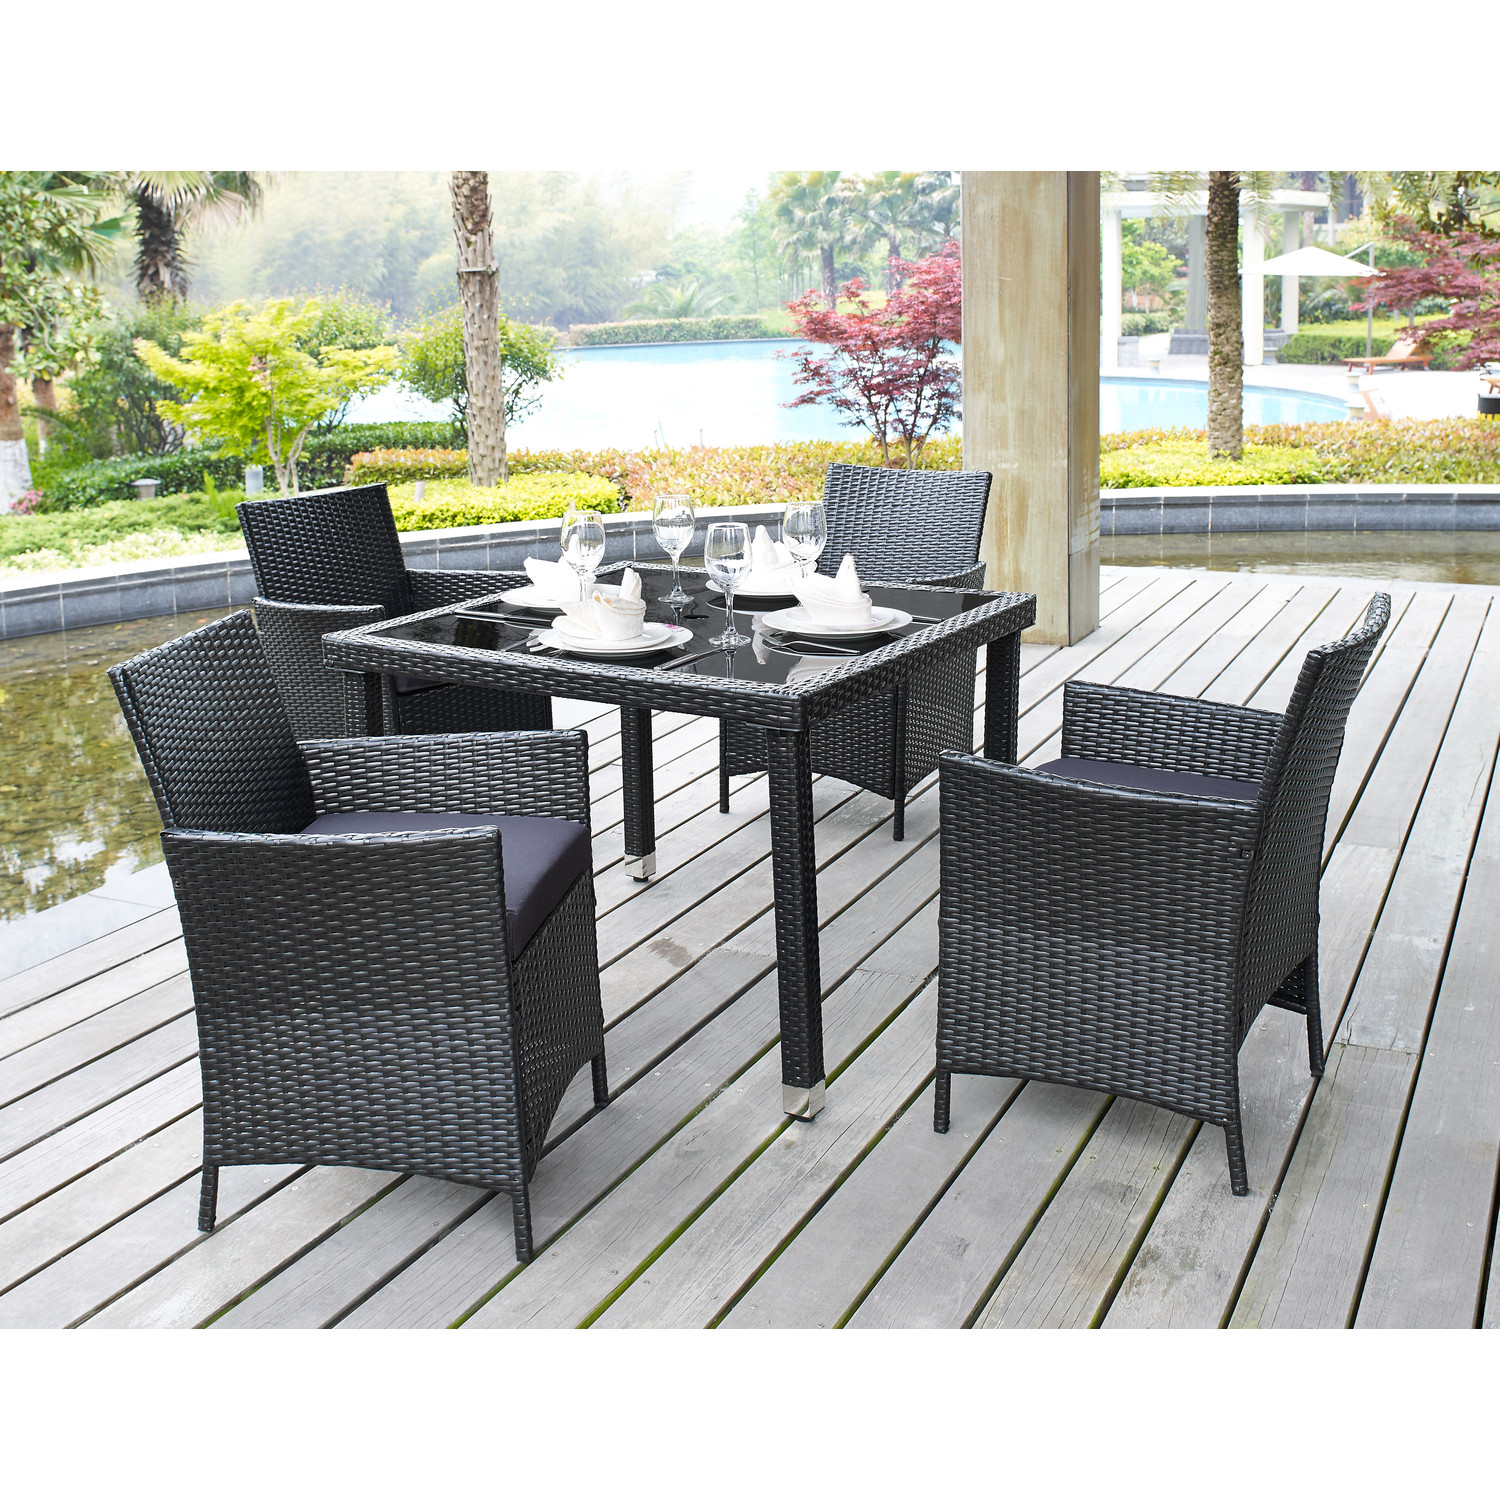 Places to go for affordable modern outdoor furniture for Deck furniture